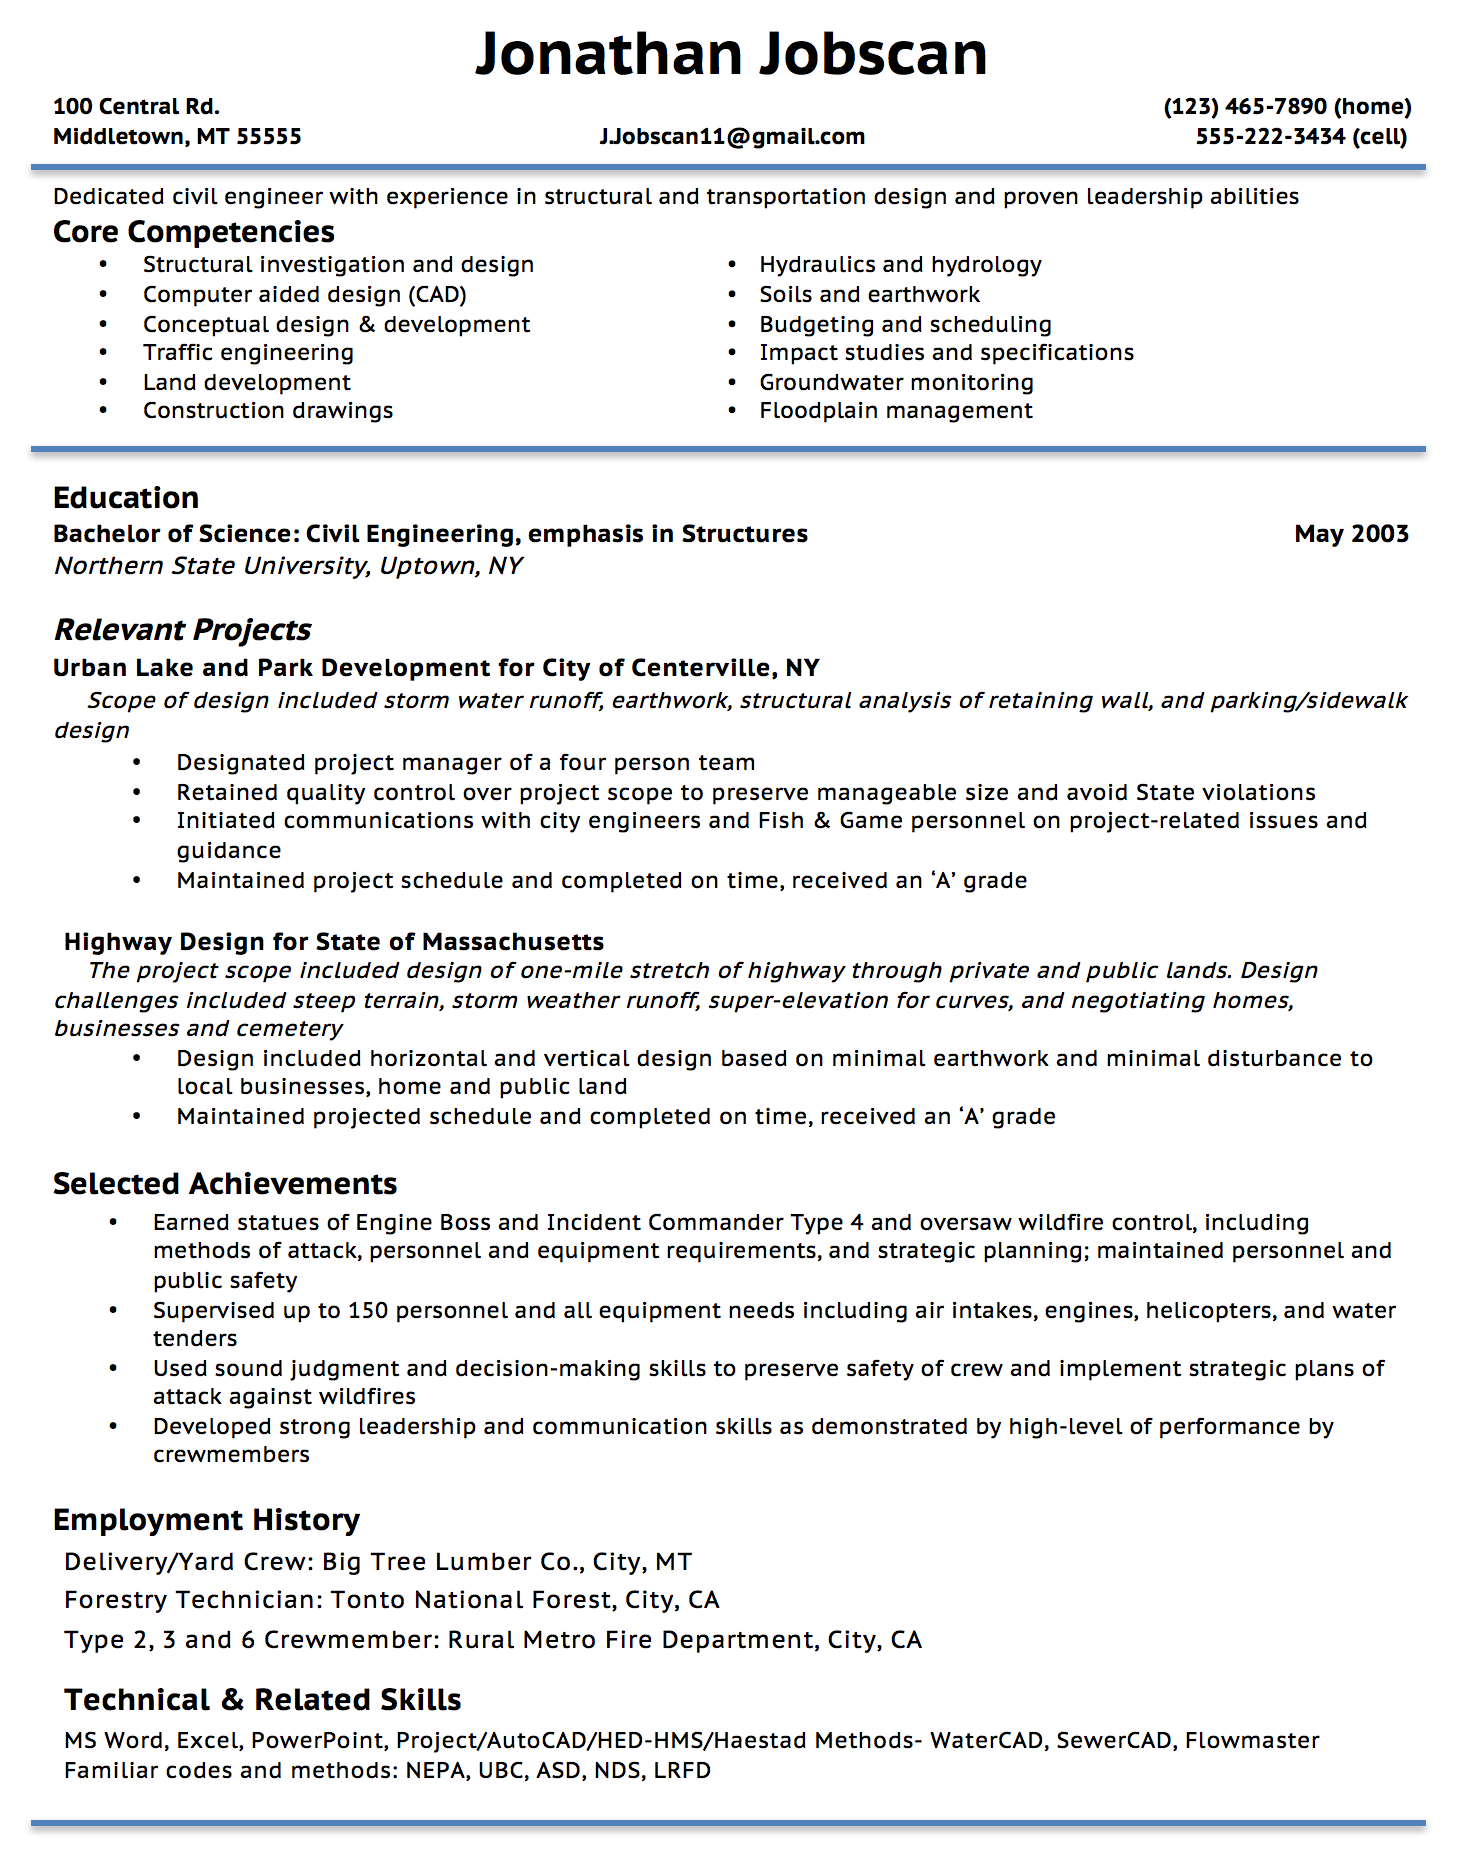 Opposenewapstandardsus  Nice Resume Writing Guide  Jobscan With Remarkable Example Of A Functional Resume Format With Delectable Career Focus On Resume Also Resume Magna Cum Laude In Addition Completely Free Resume And Pre Med Student Resume As Well As Is Resume Now Free Additionally How Do You Fill Out A Resume From Jobscanco With Opposenewapstandardsus  Remarkable Resume Writing Guide  Jobscan With Delectable Example Of A Functional Resume Format And Nice Career Focus On Resume Also Resume Magna Cum Laude In Addition Completely Free Resume From Jobscanco